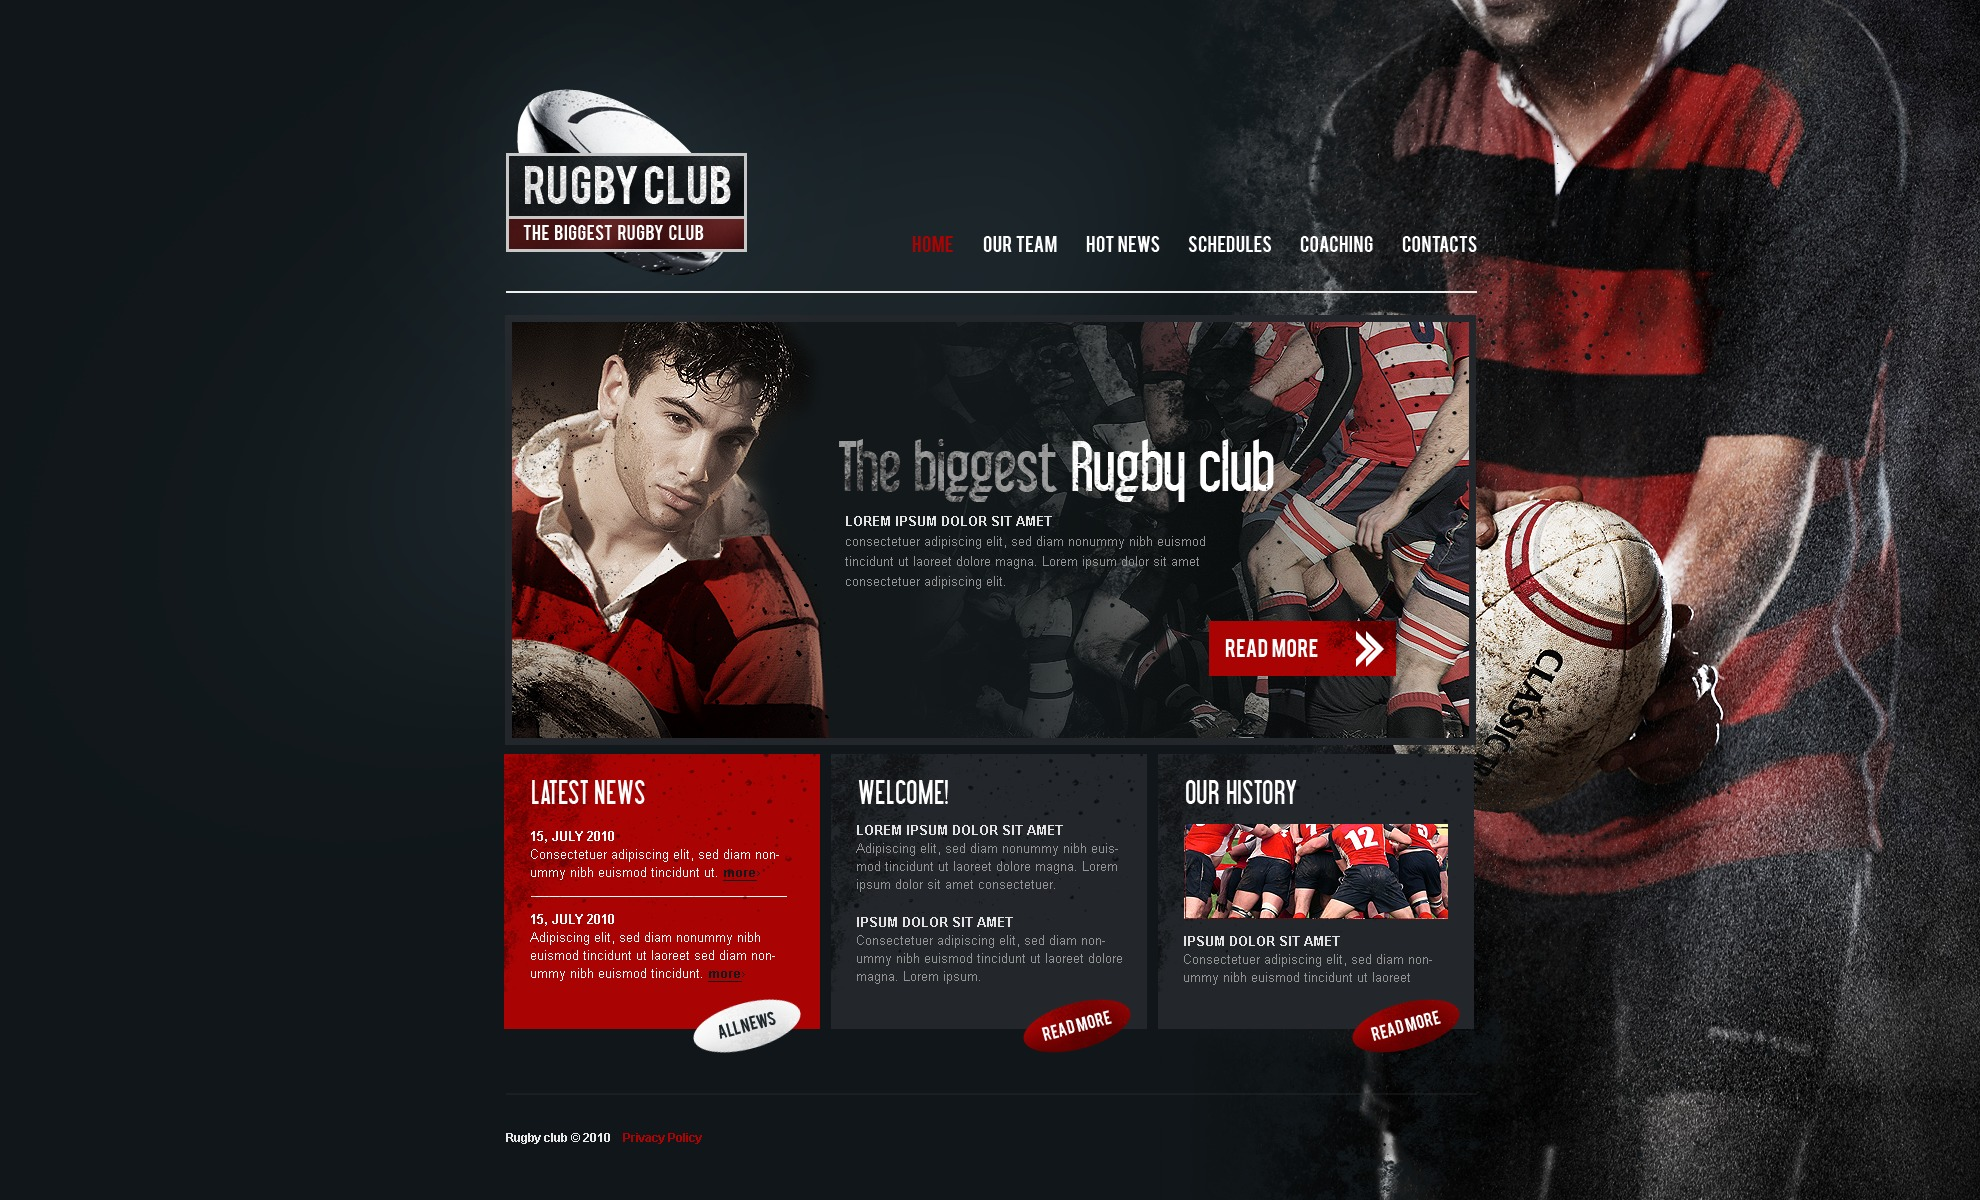 The Rugby Club PSD Design 54192, one of the best PSD templates of its kind (sport, wide), also known as rugby club PSD template, sport PSD template, game PSD template, news PSD template, team PSD template, league PSD template, score PSD template, championship PSD template, season PSD template, result PSD template, player PSD template, programs PSD template, photos PSD template, contacts PSD template, series PSD template, training PSD template, search PSD template, go PSD template, flash PSD template, tickets PSD template, info PSD template, video PSD template, latest sports PSD template, activities PSD template, action clubbing PSD template, team PSD template, group PSD template, people PSD template, newsflash company PSD template, forum PSD template, red PSD template, data PSD template, date and related with rugby club, sport, game, news, team, league, score, championship, season, result, player, programs, photos, contacts, series, training, search, go, flash, tickets, info, video, latest sports, activities, action clubbing, team, group, people, newsflash company, forum, red, data, date, etc.